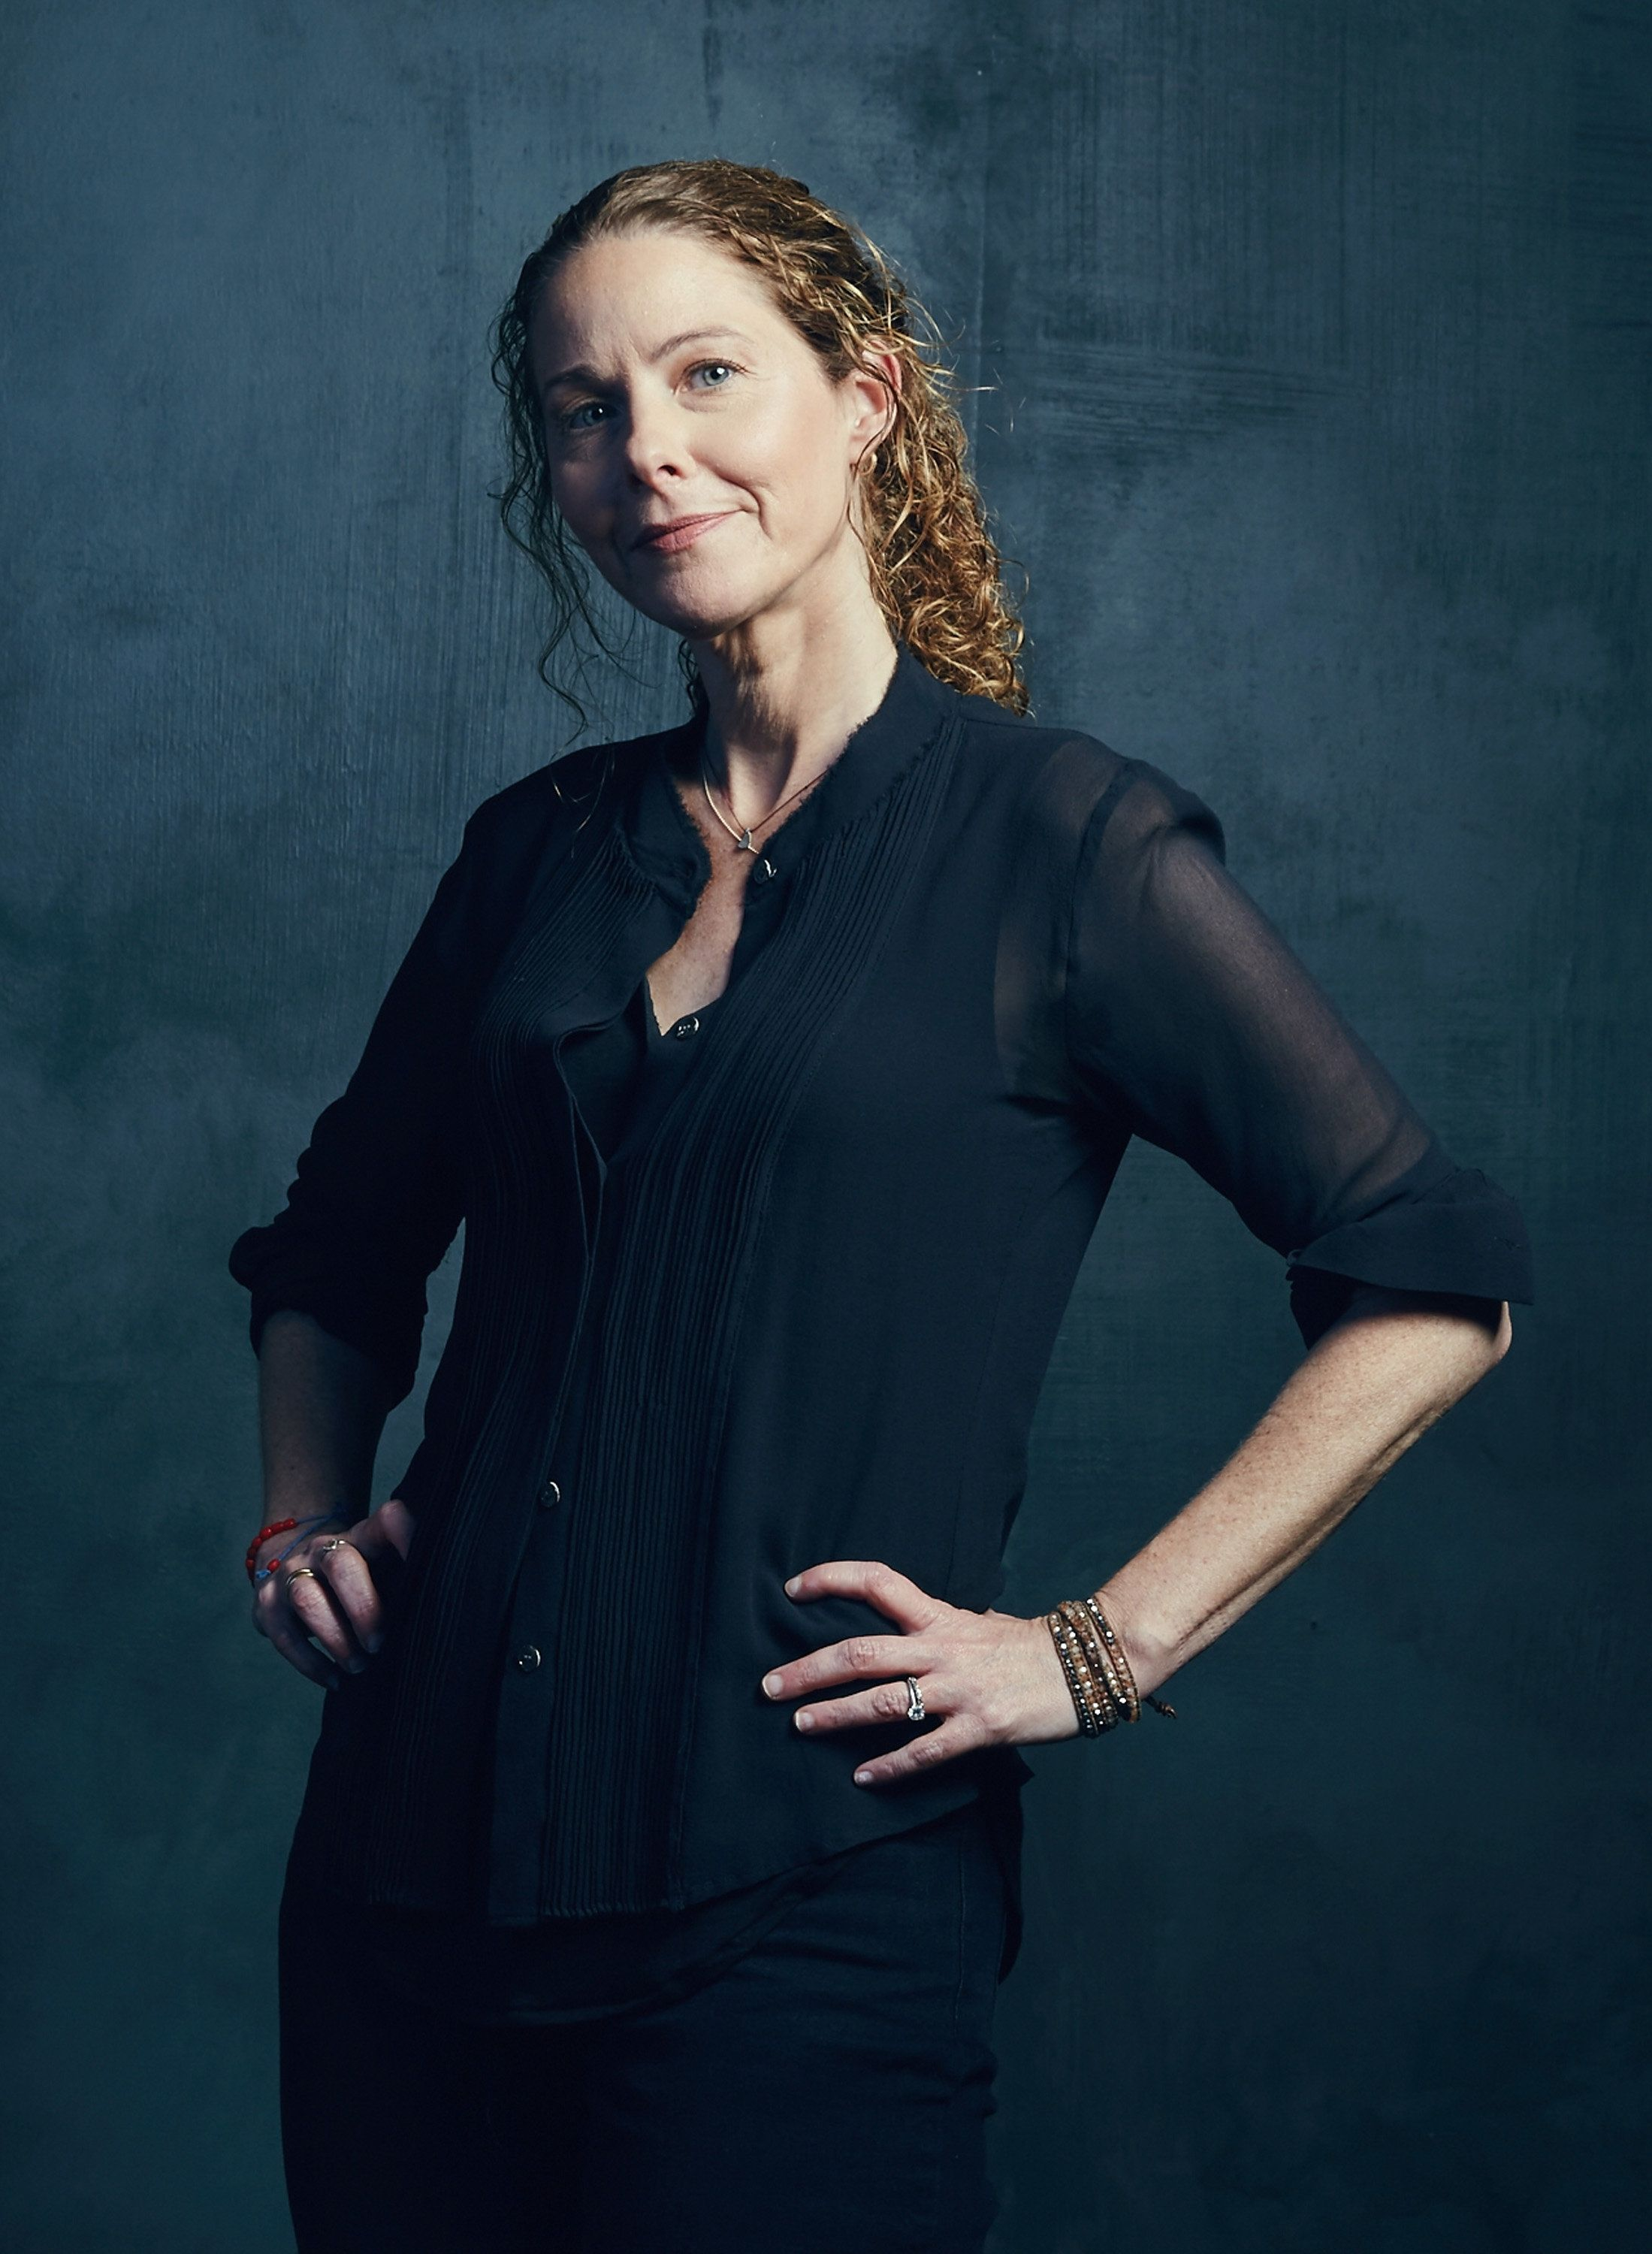 AUSTIN, TX - MARCH 14:  Writer/director Debra Eisenstadt of 'Before The Sun Explodes' is photographed in the Getty Images SXSW Portrait Studio powered by Samsung at the Samsung Studio on March 14, 2016 in Austin, Texas.  (Photo by Smallz & Raskind/Getty Images for Samsung)